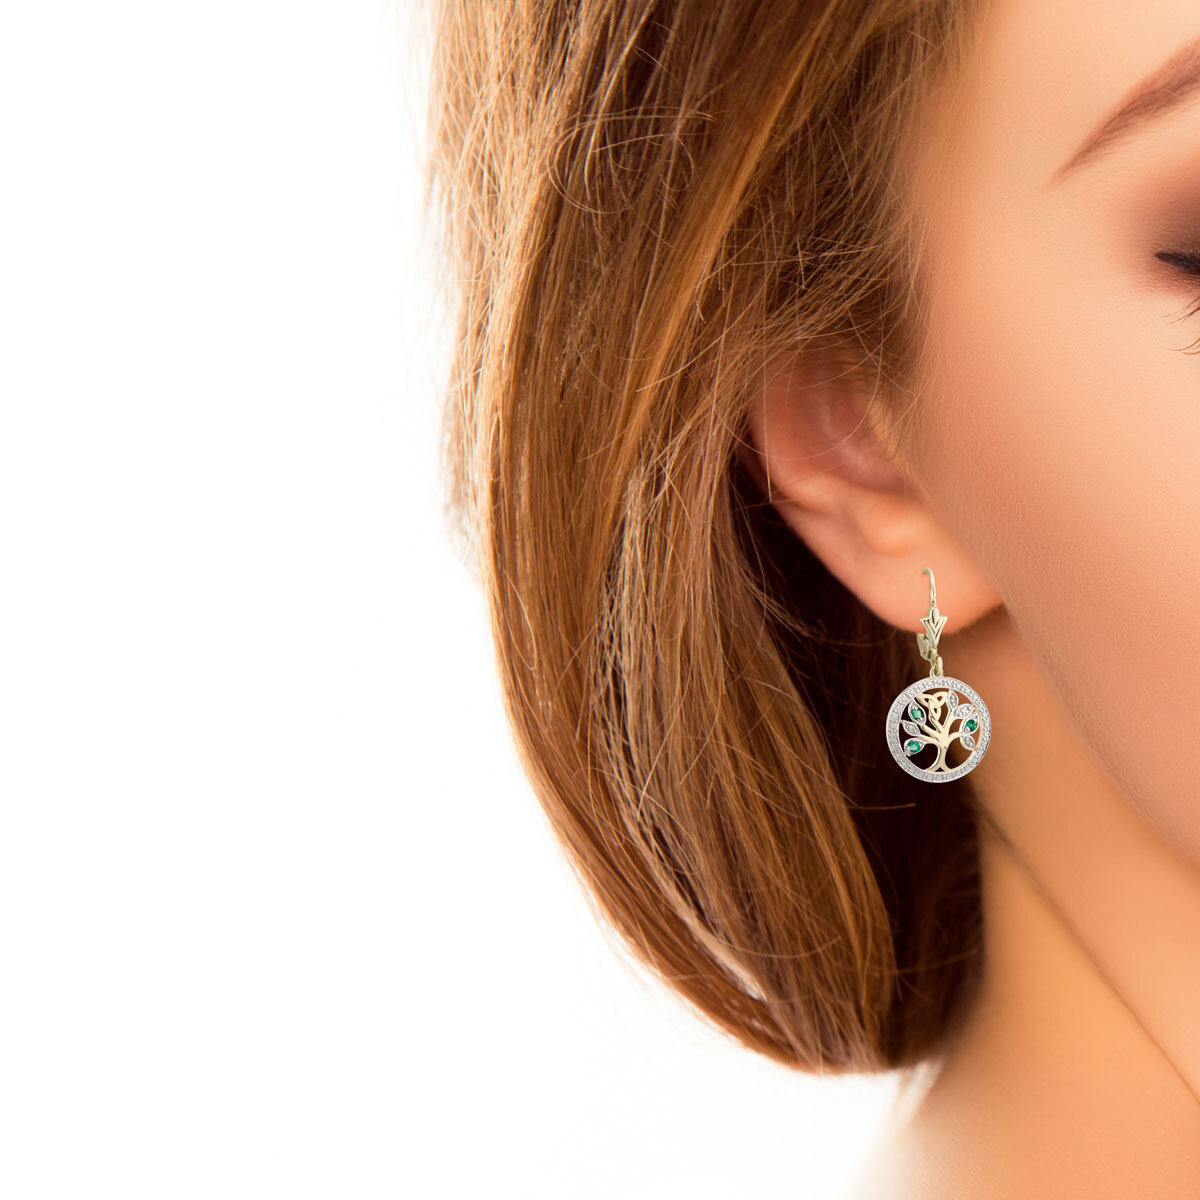 14 karat gold diamond and emerald tree of life earrings S33748 presented on a model